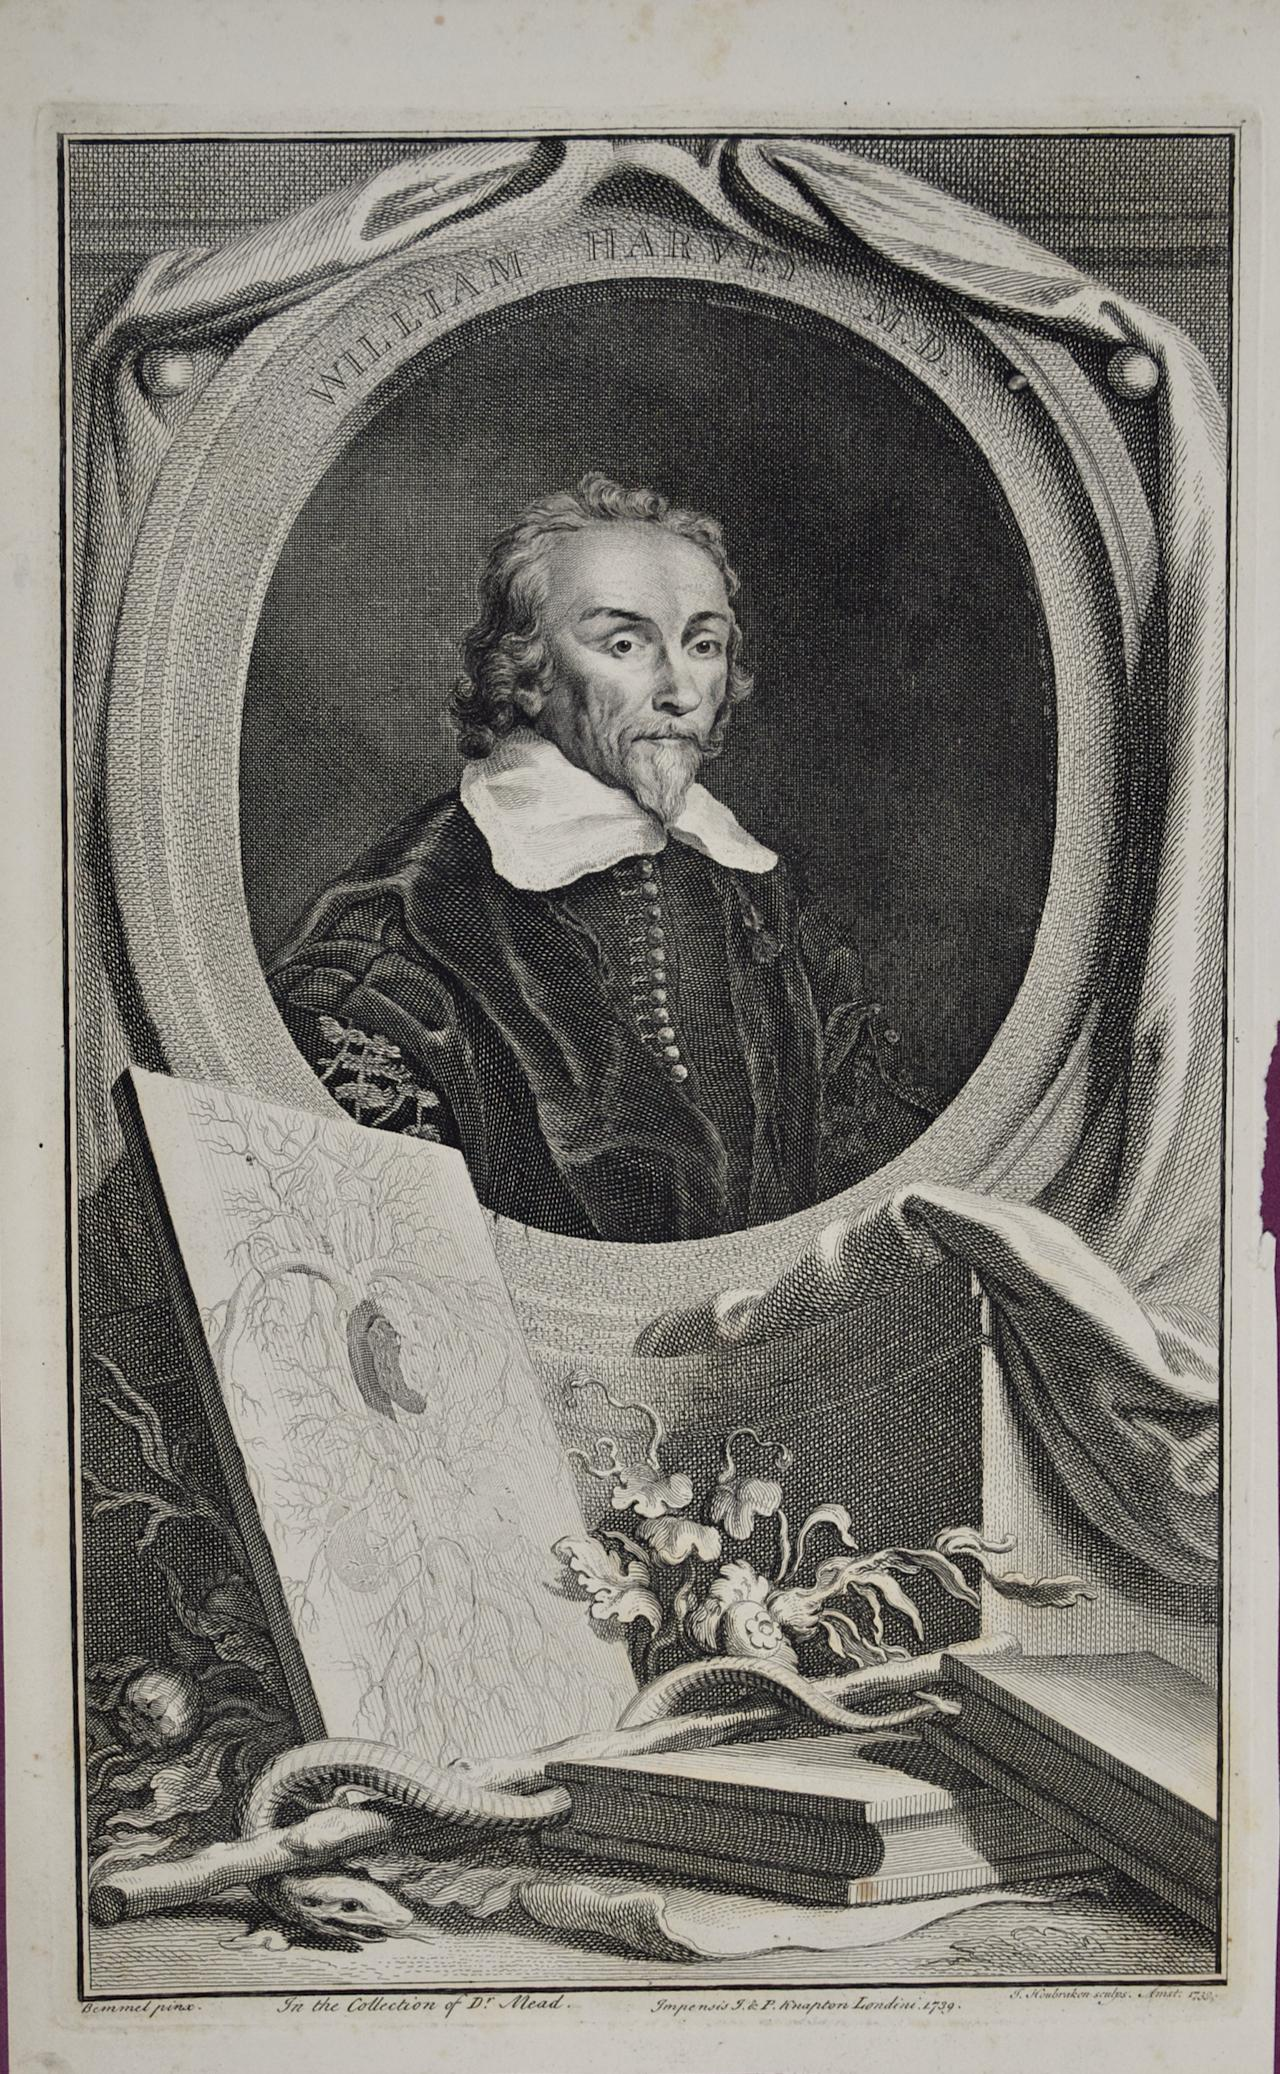 18th C. Portrait of William Harvey, MD: 17th C. Circulatory System Discoveries